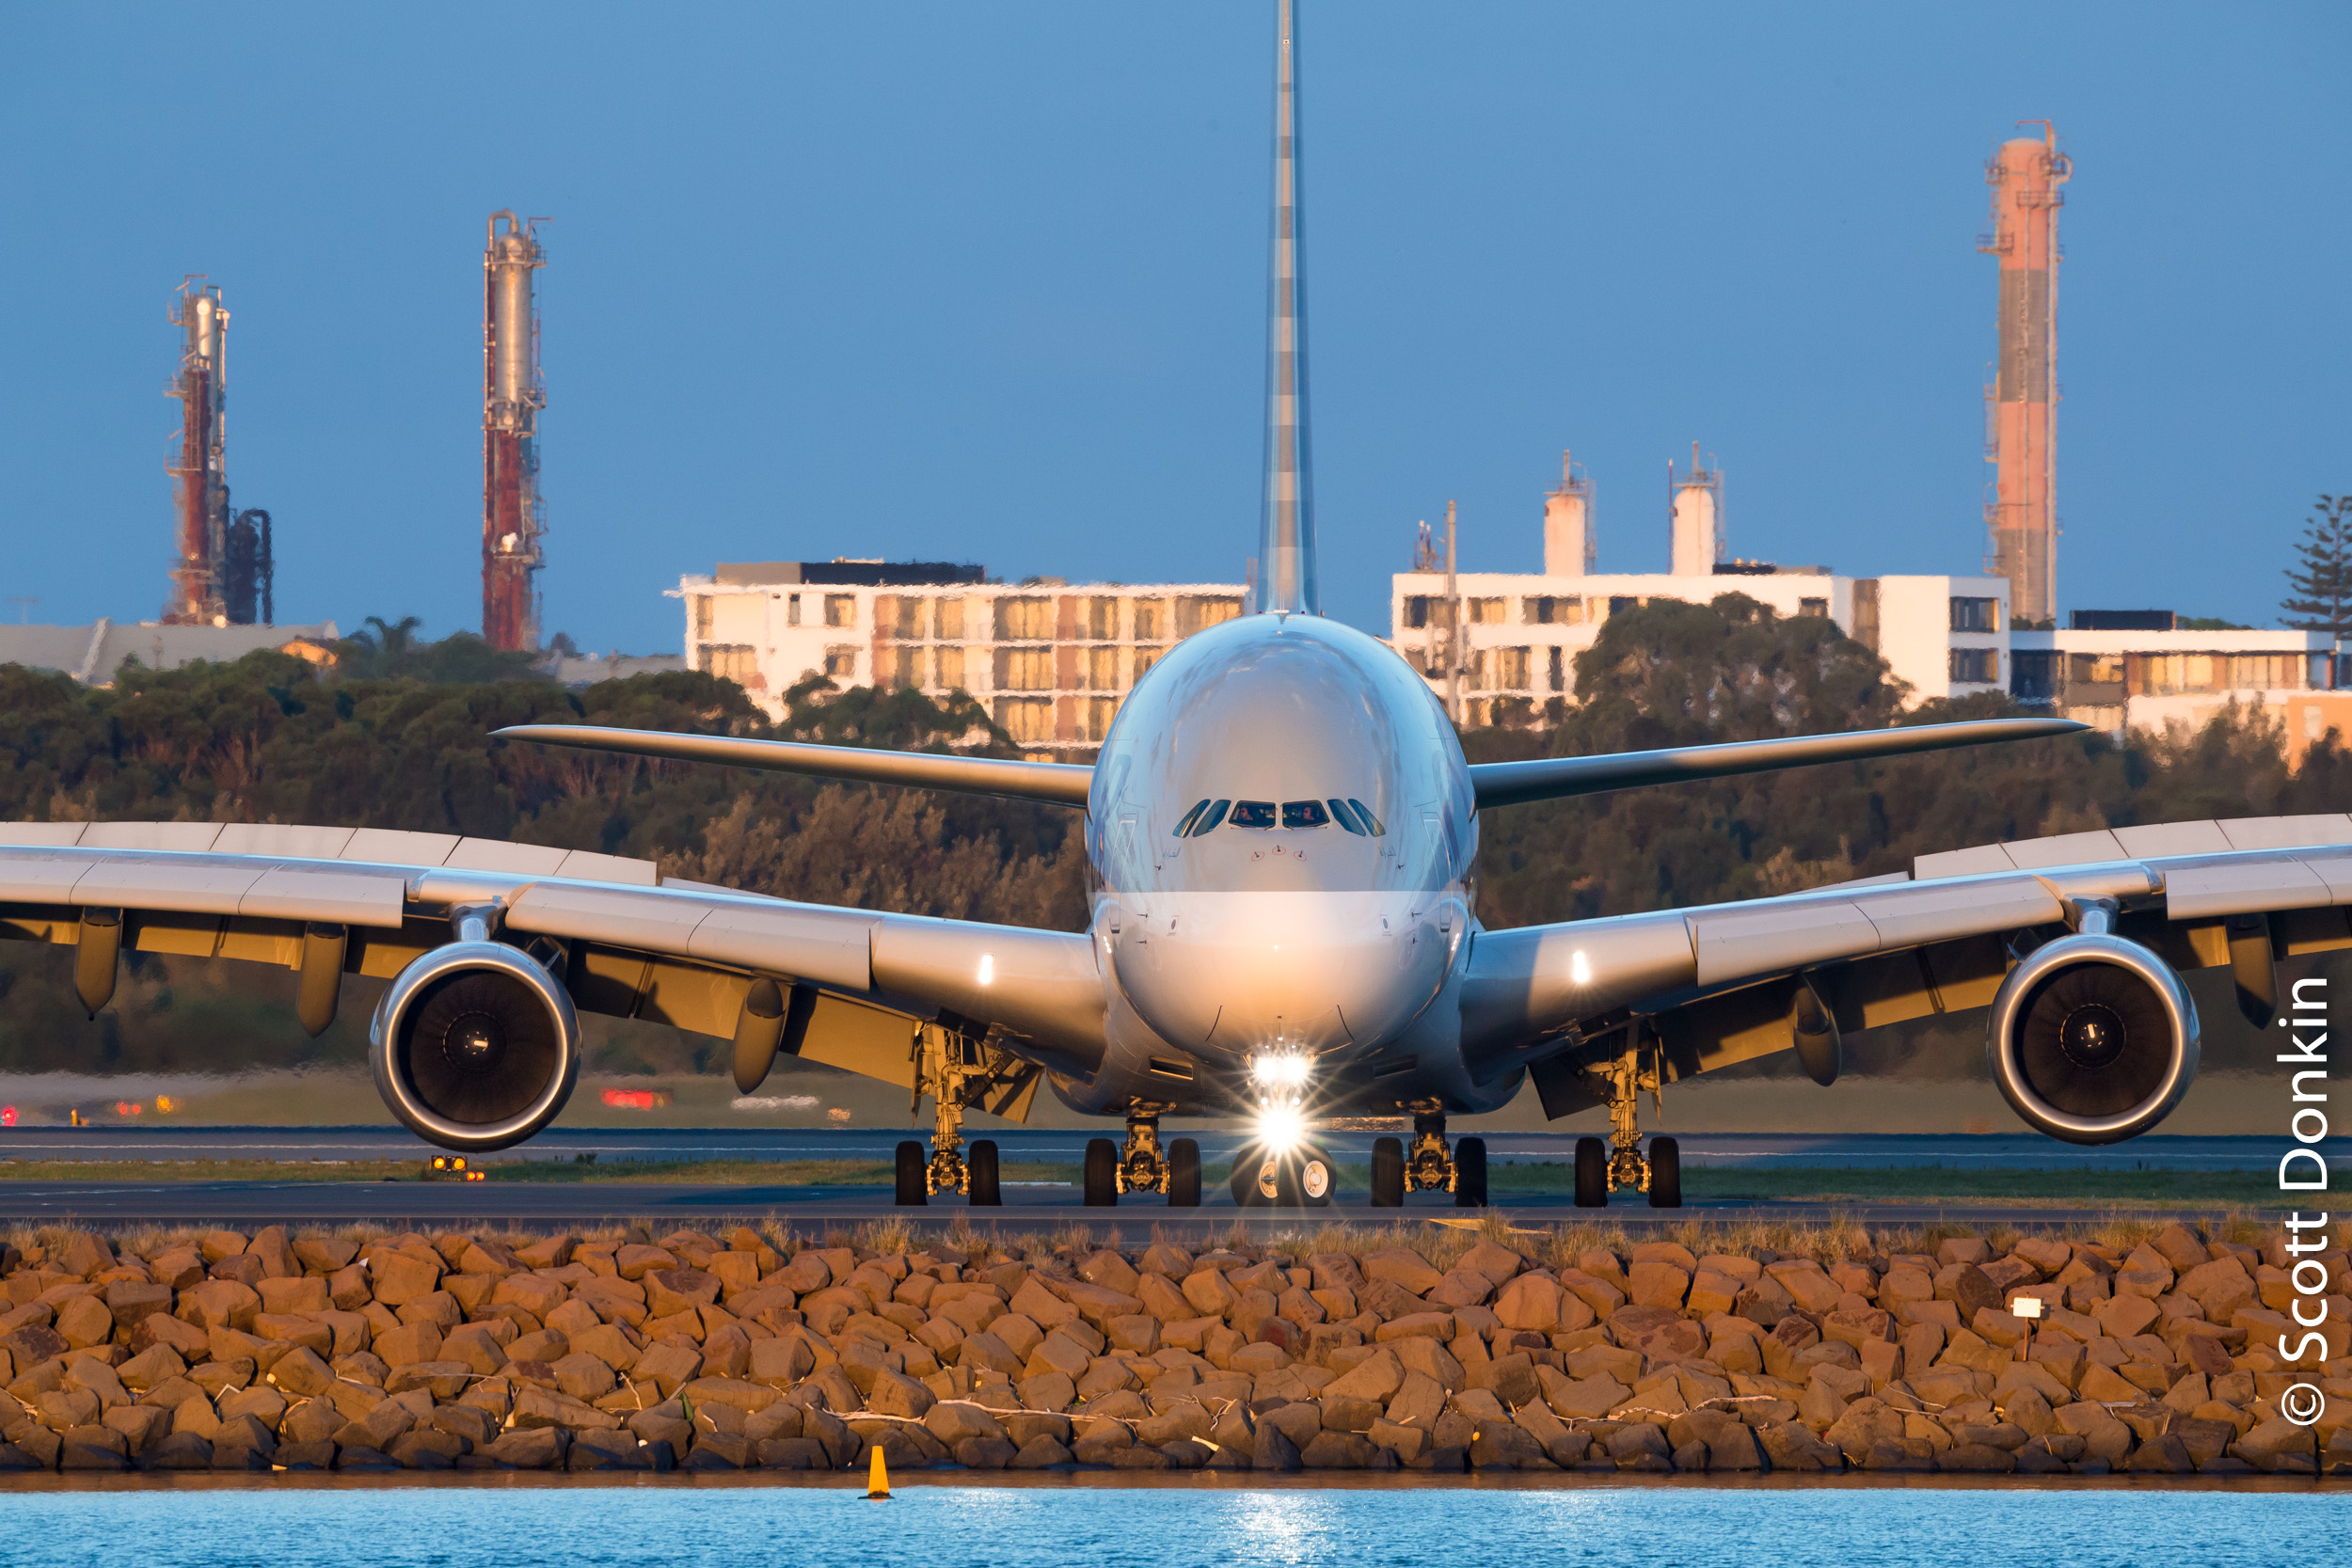 Airbus A380-800 (A388 quad-jet), turns after landing at Kingsford Smith Airport, Sydney.